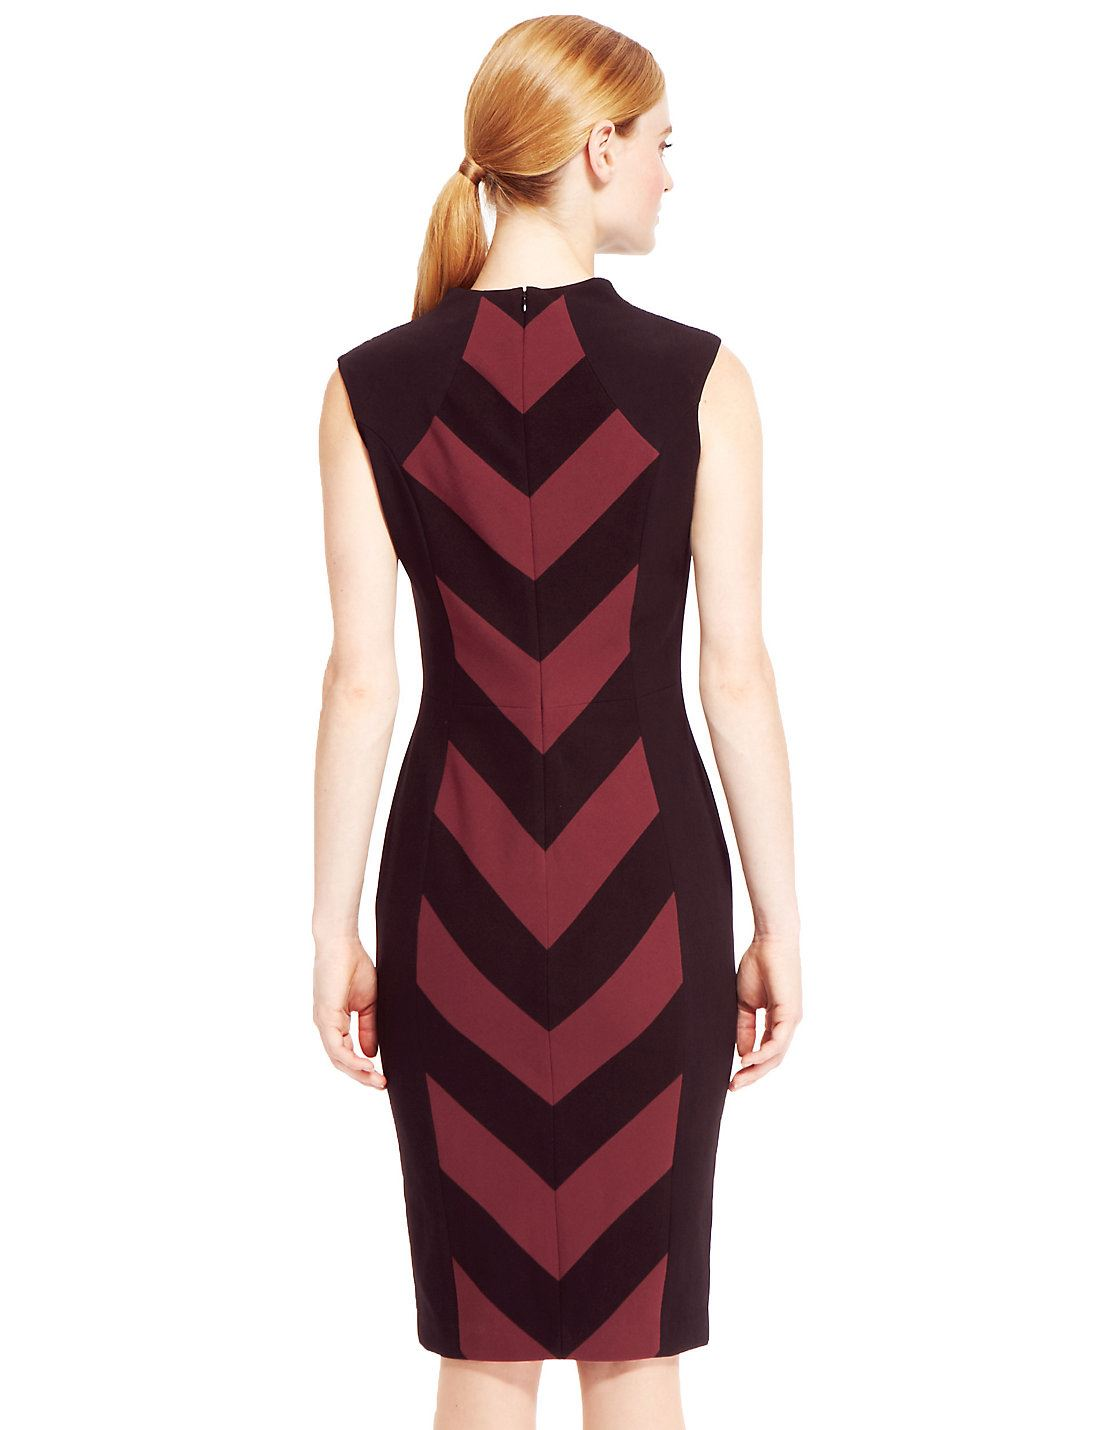 northtercessbudh.cf offers Chevron Dress cheap on sale with discount prices in Women's Dresses, so you can shop from a huge selection of Chevron Dress, FREE Shipping available worldwide.